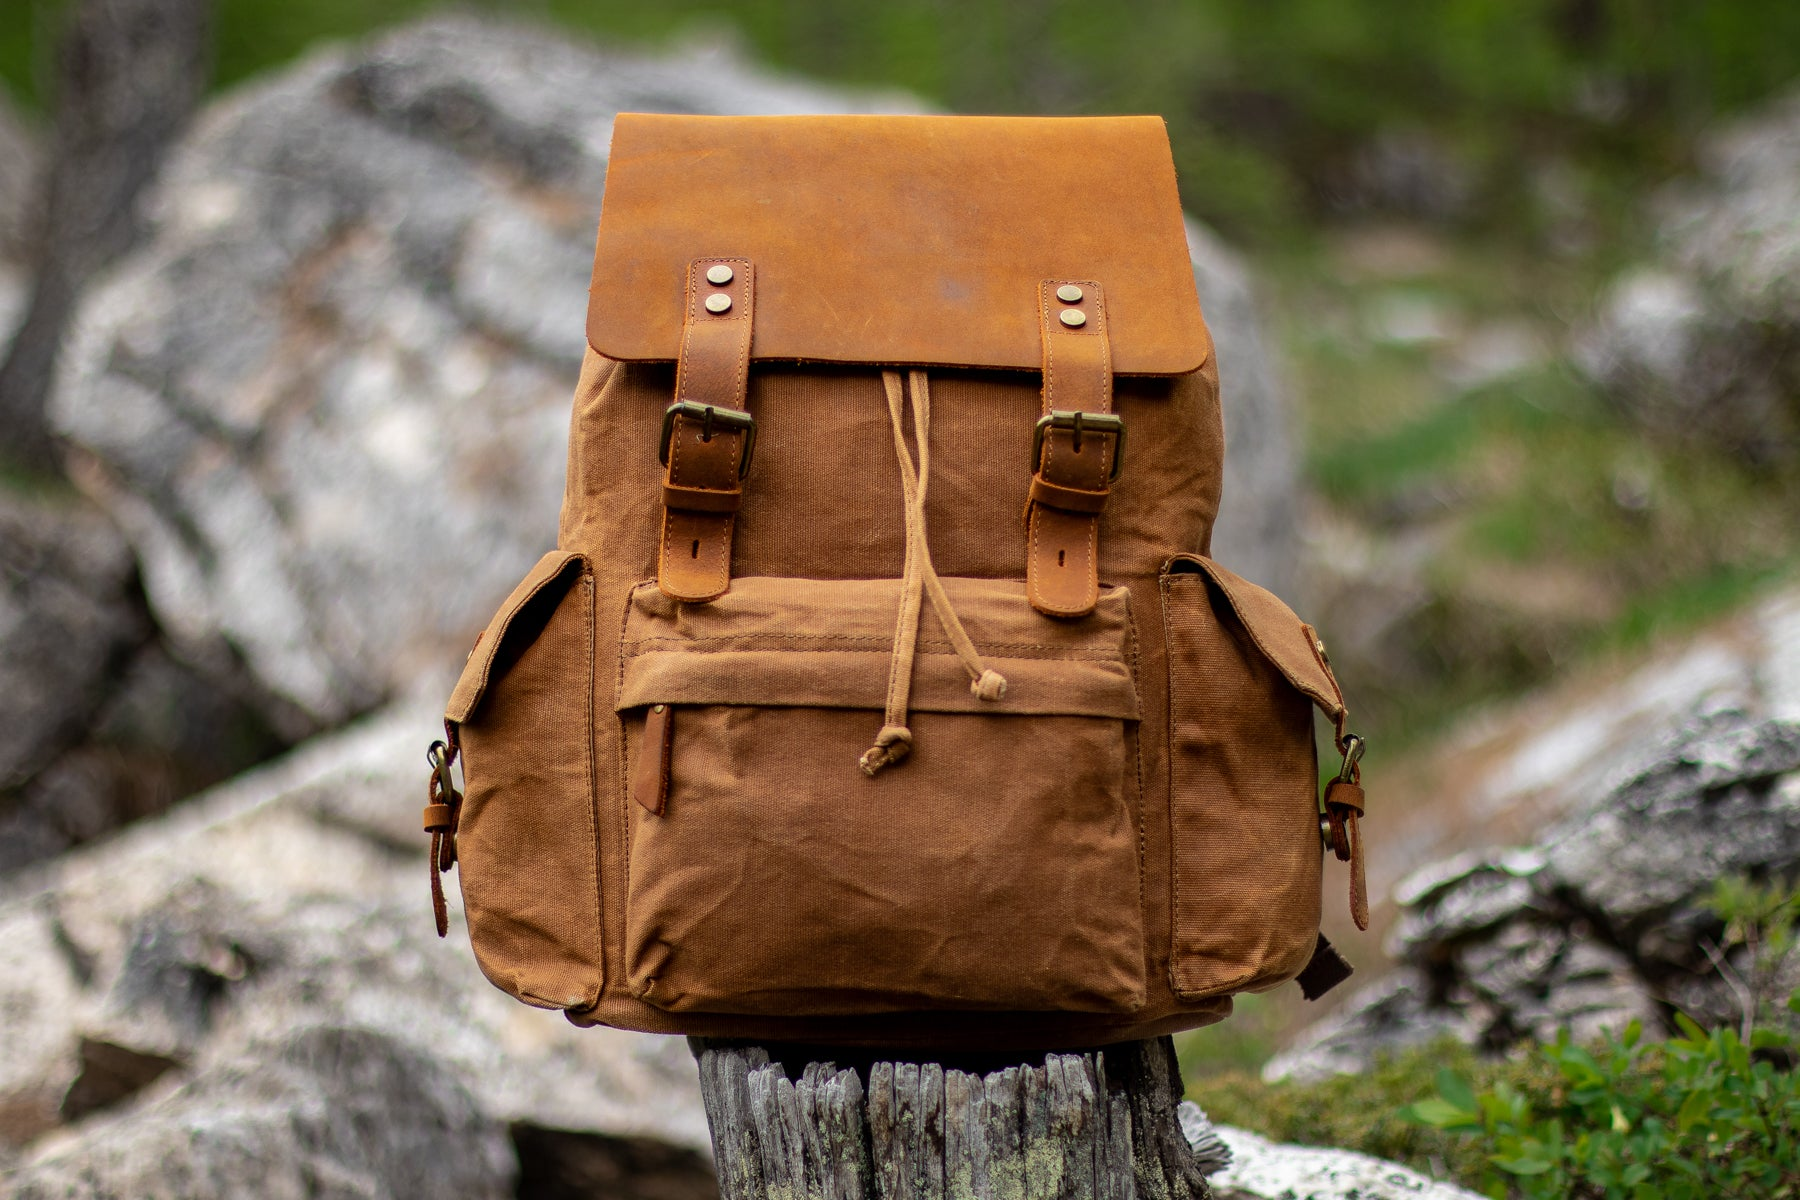 khaki waxed canvas backpack sitting on a wood branch